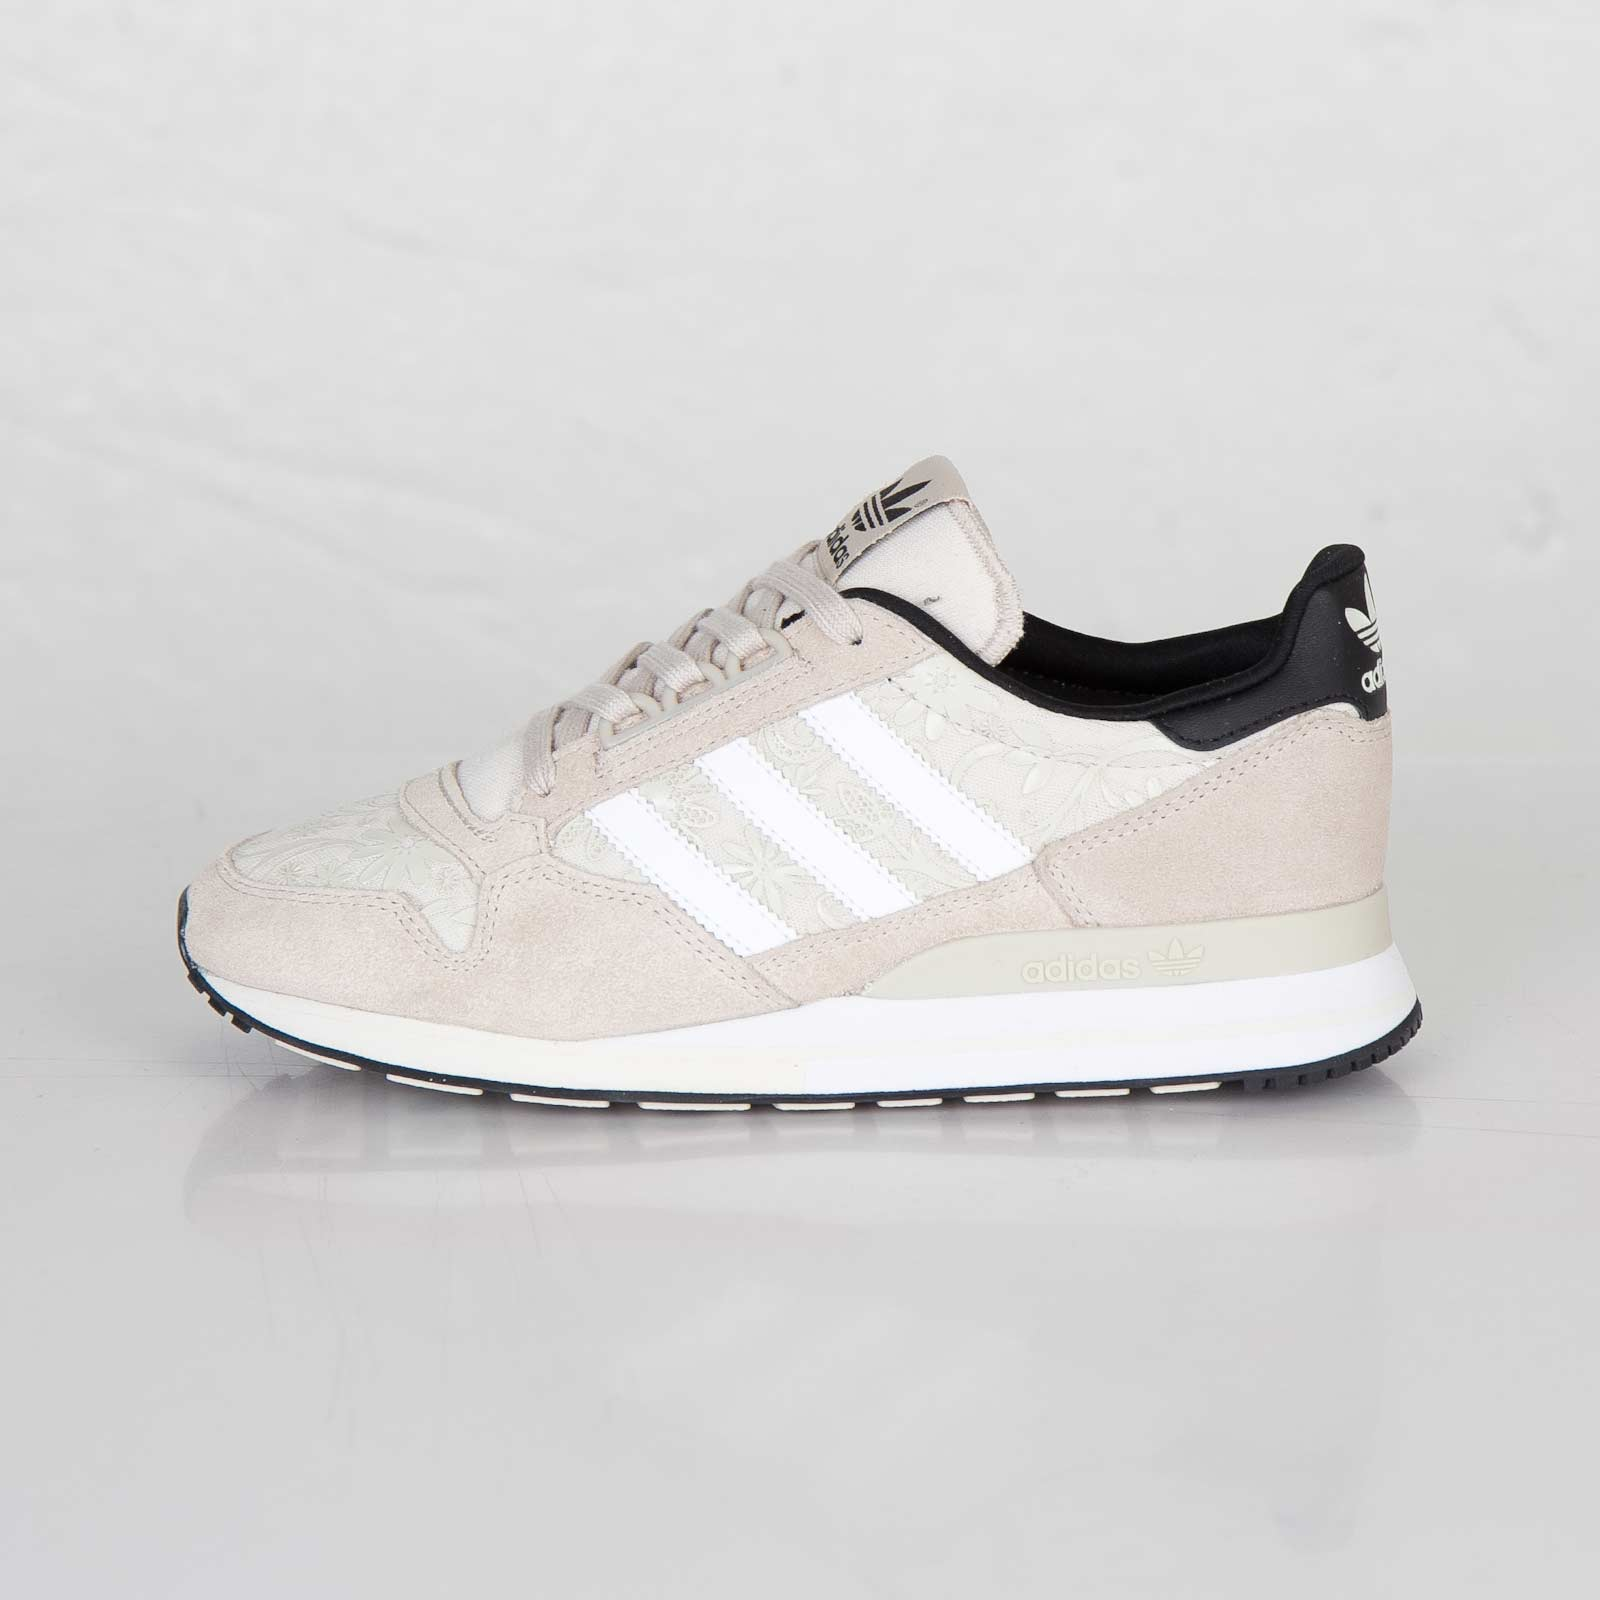 adidas ZX 500 OG W D65396 Sneakersnstuff I Sneakers